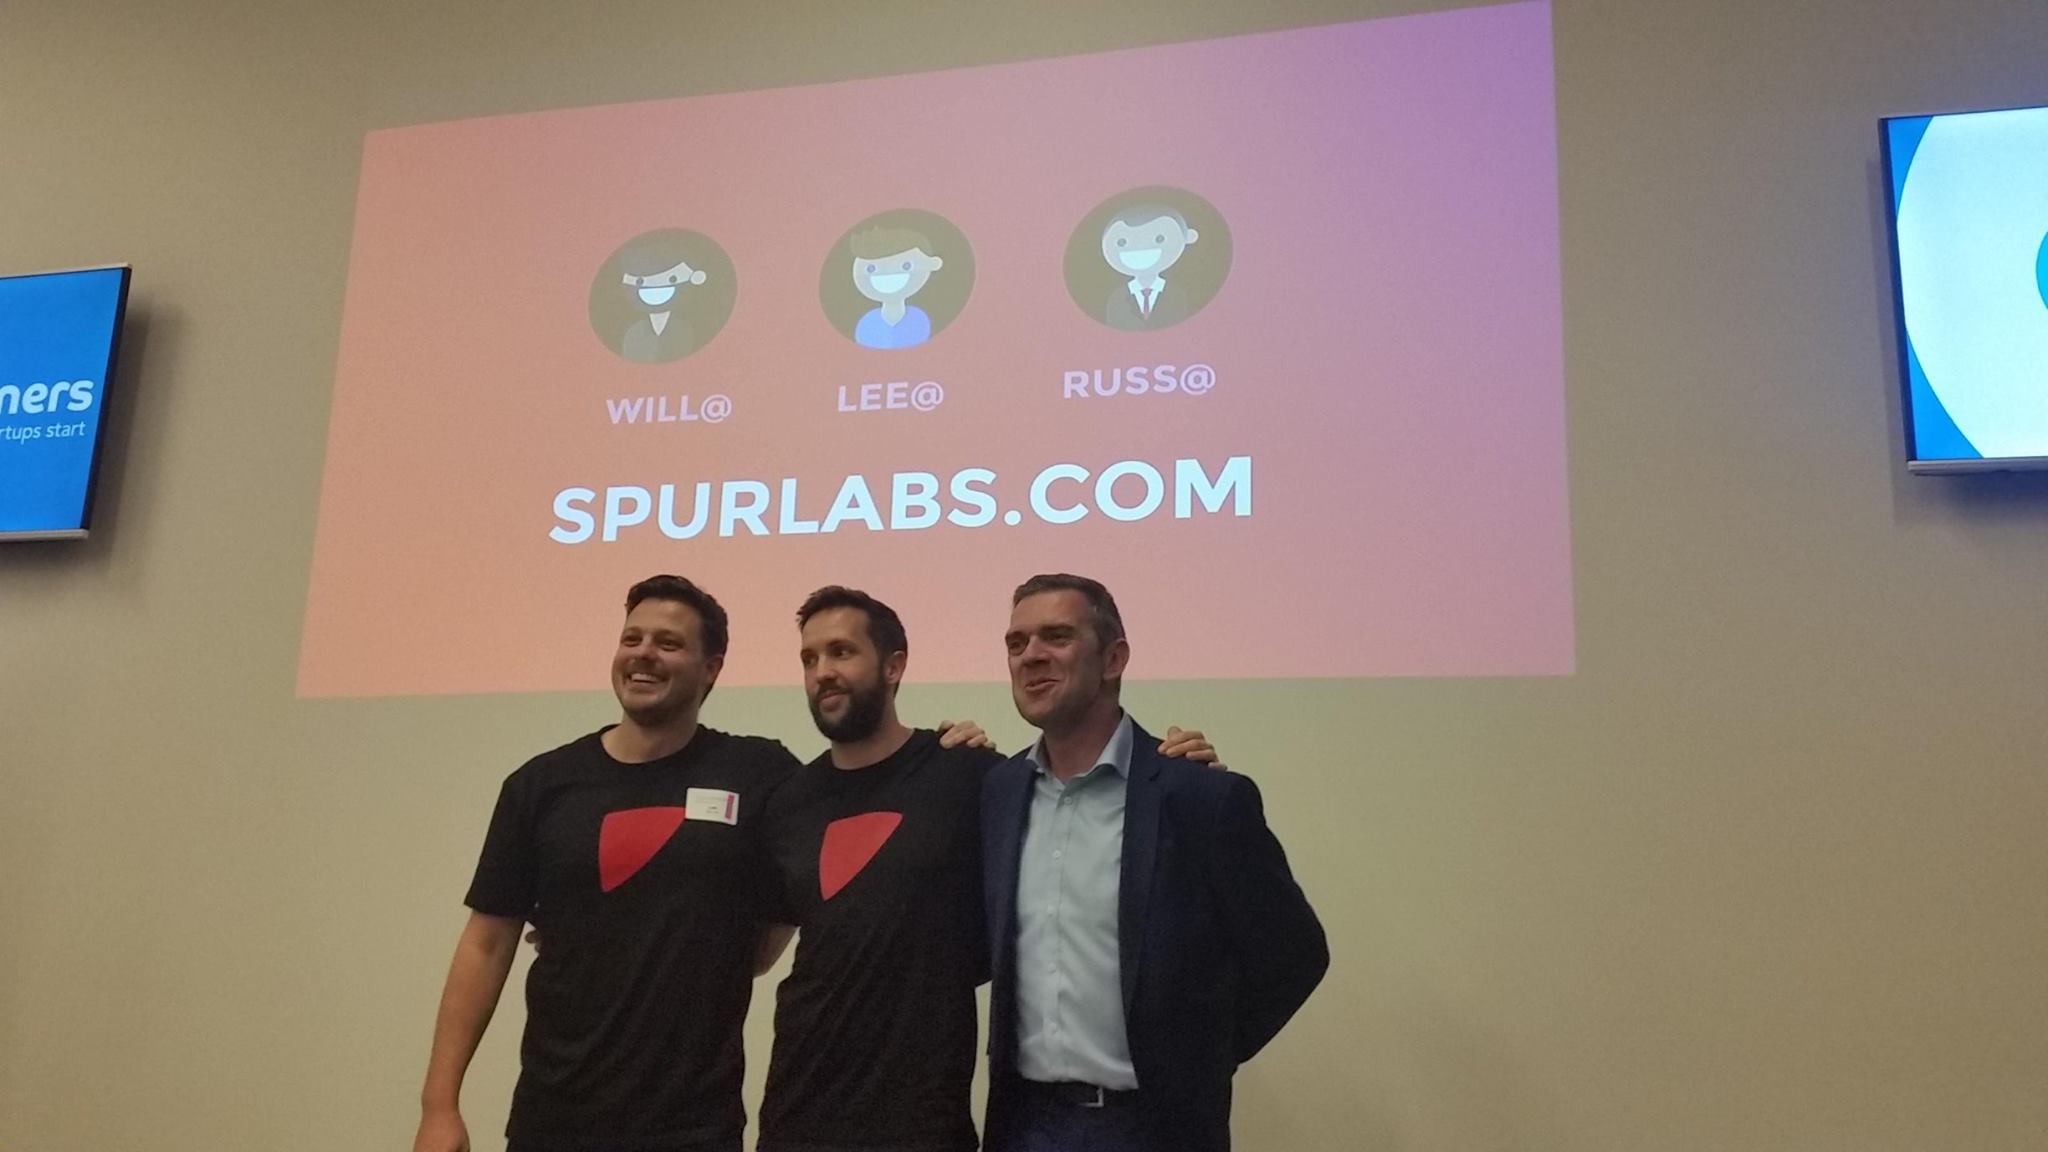 SPUR:LABS Launch